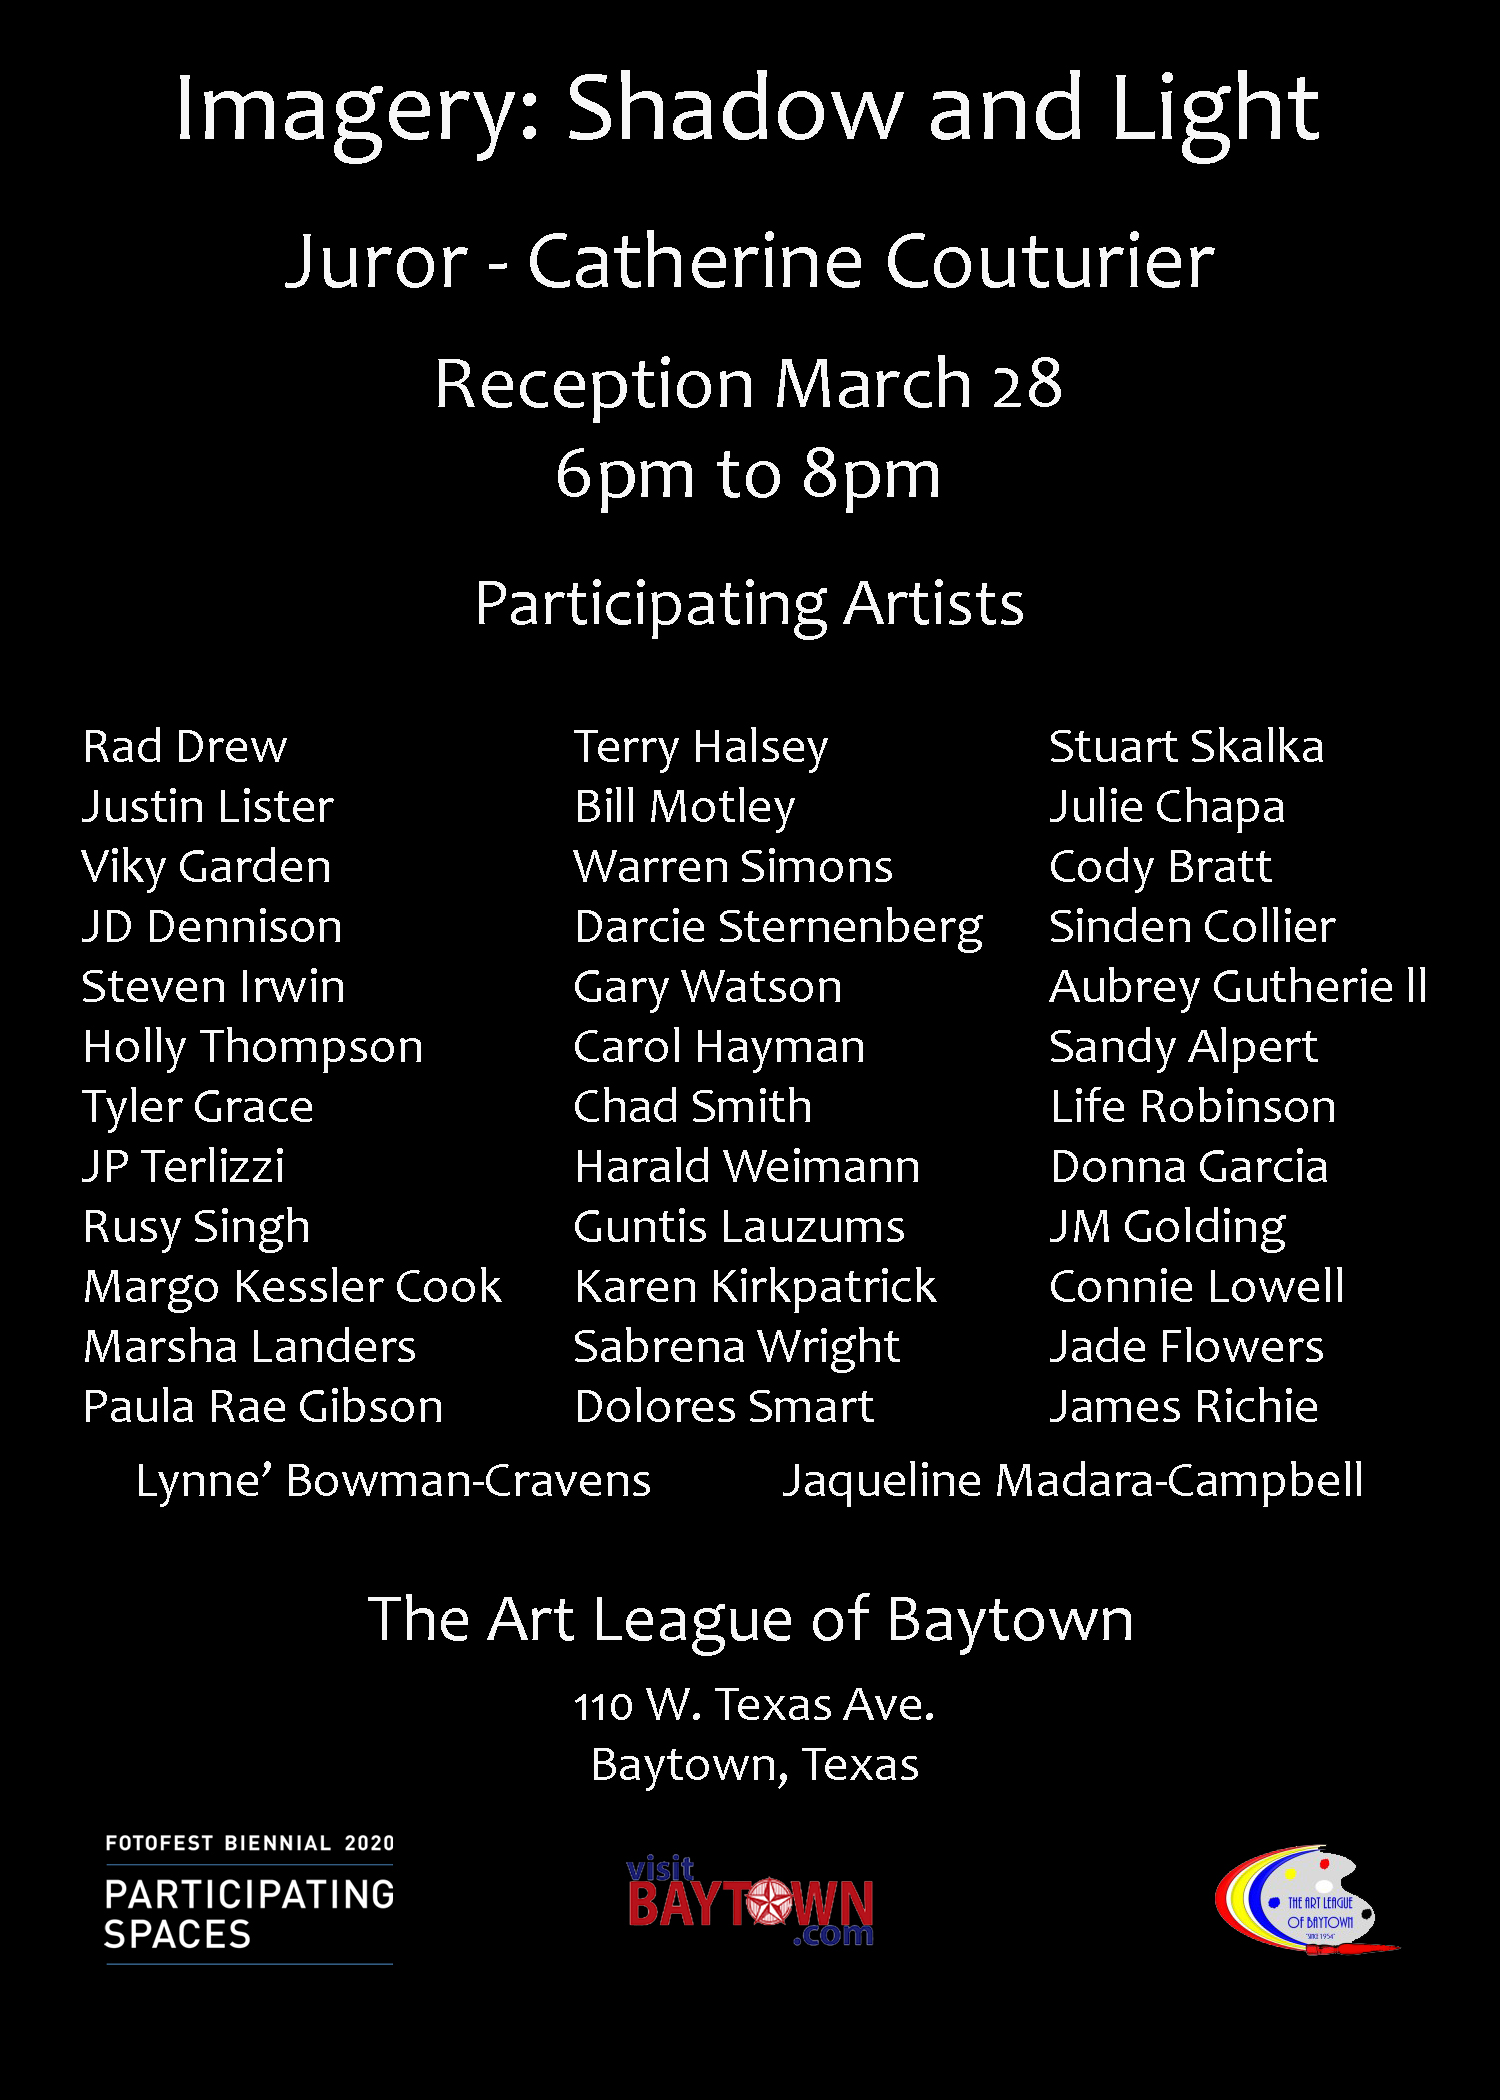 Imagery Exhibition, Baytown Art League